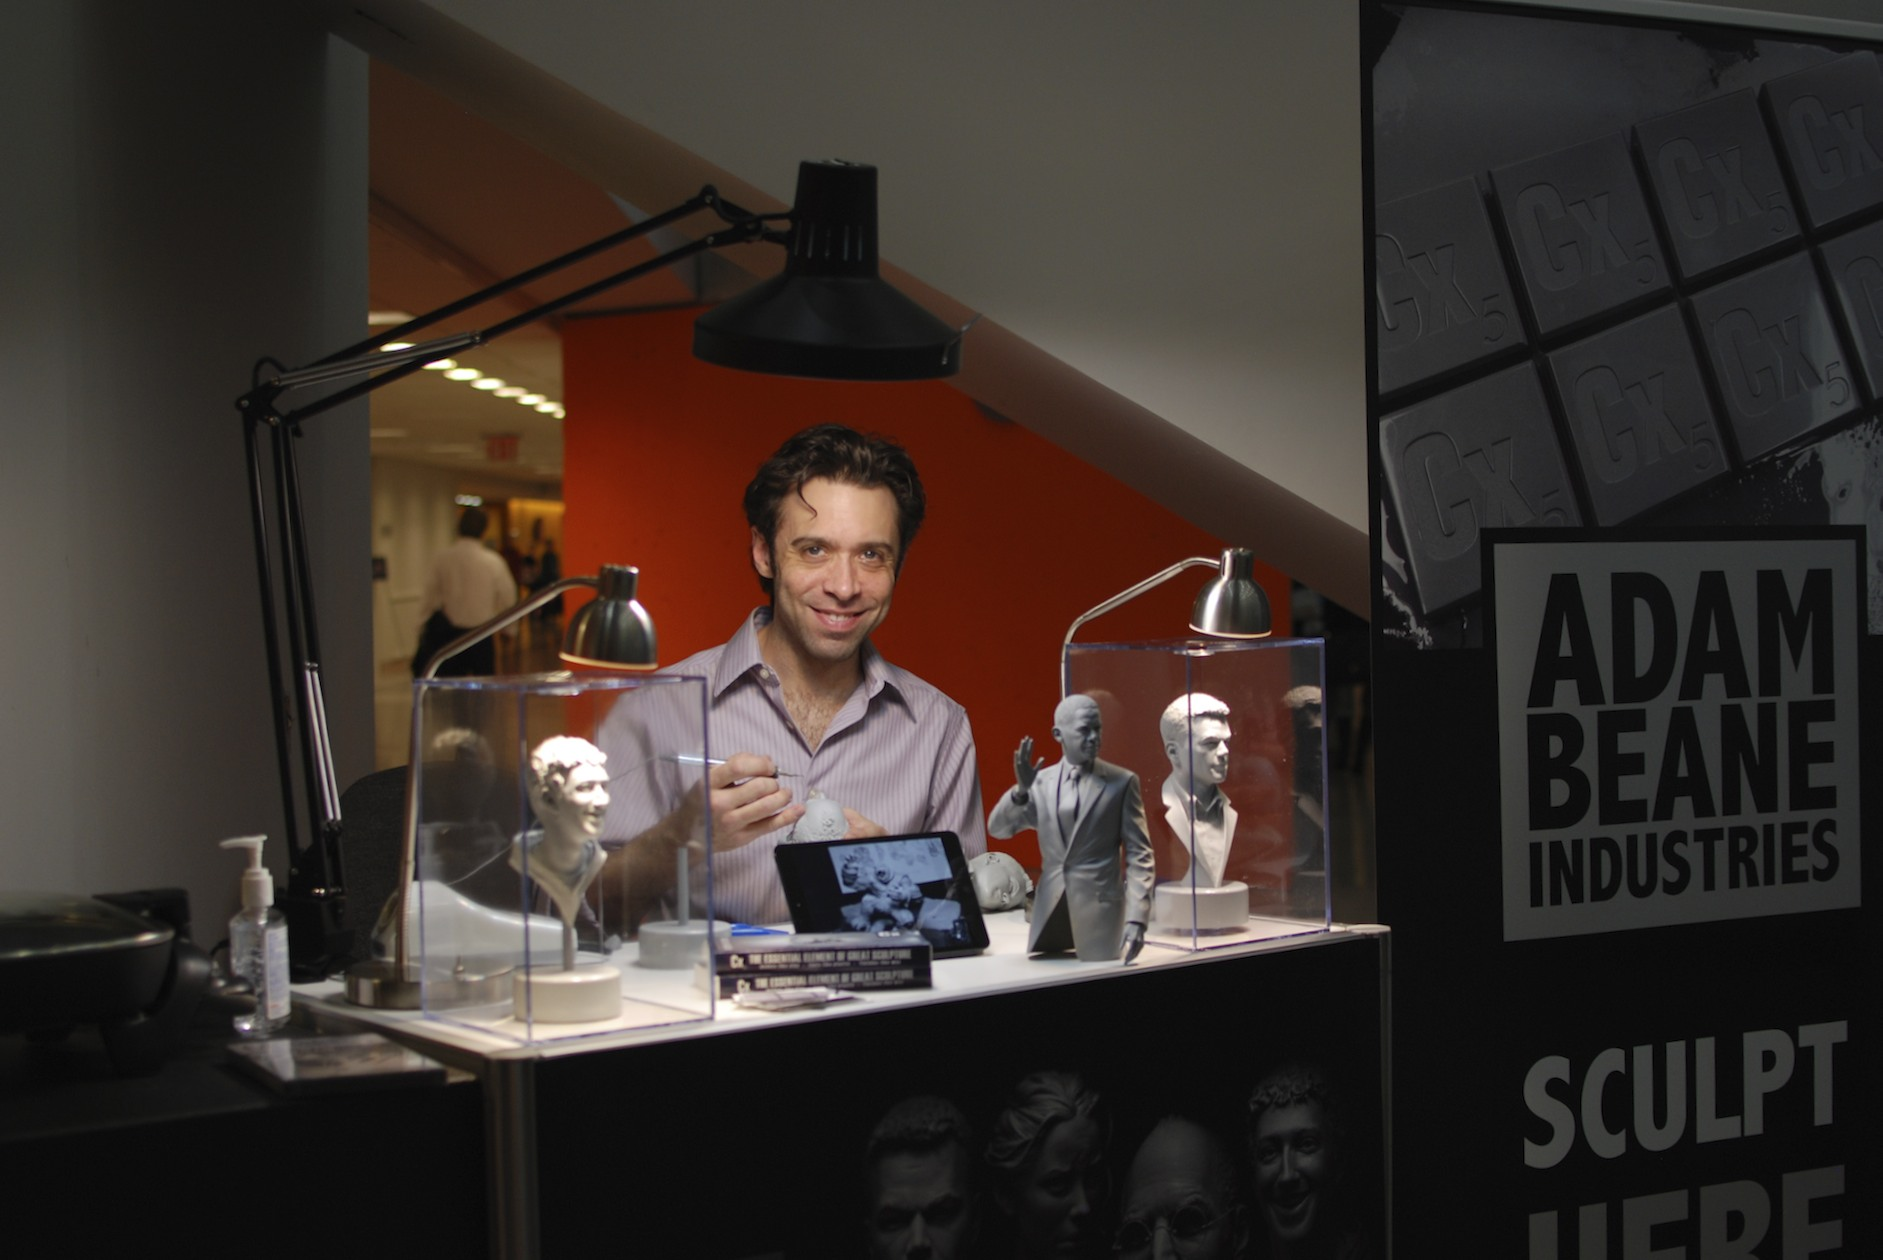 Sculpt here now, with Adam Beane!